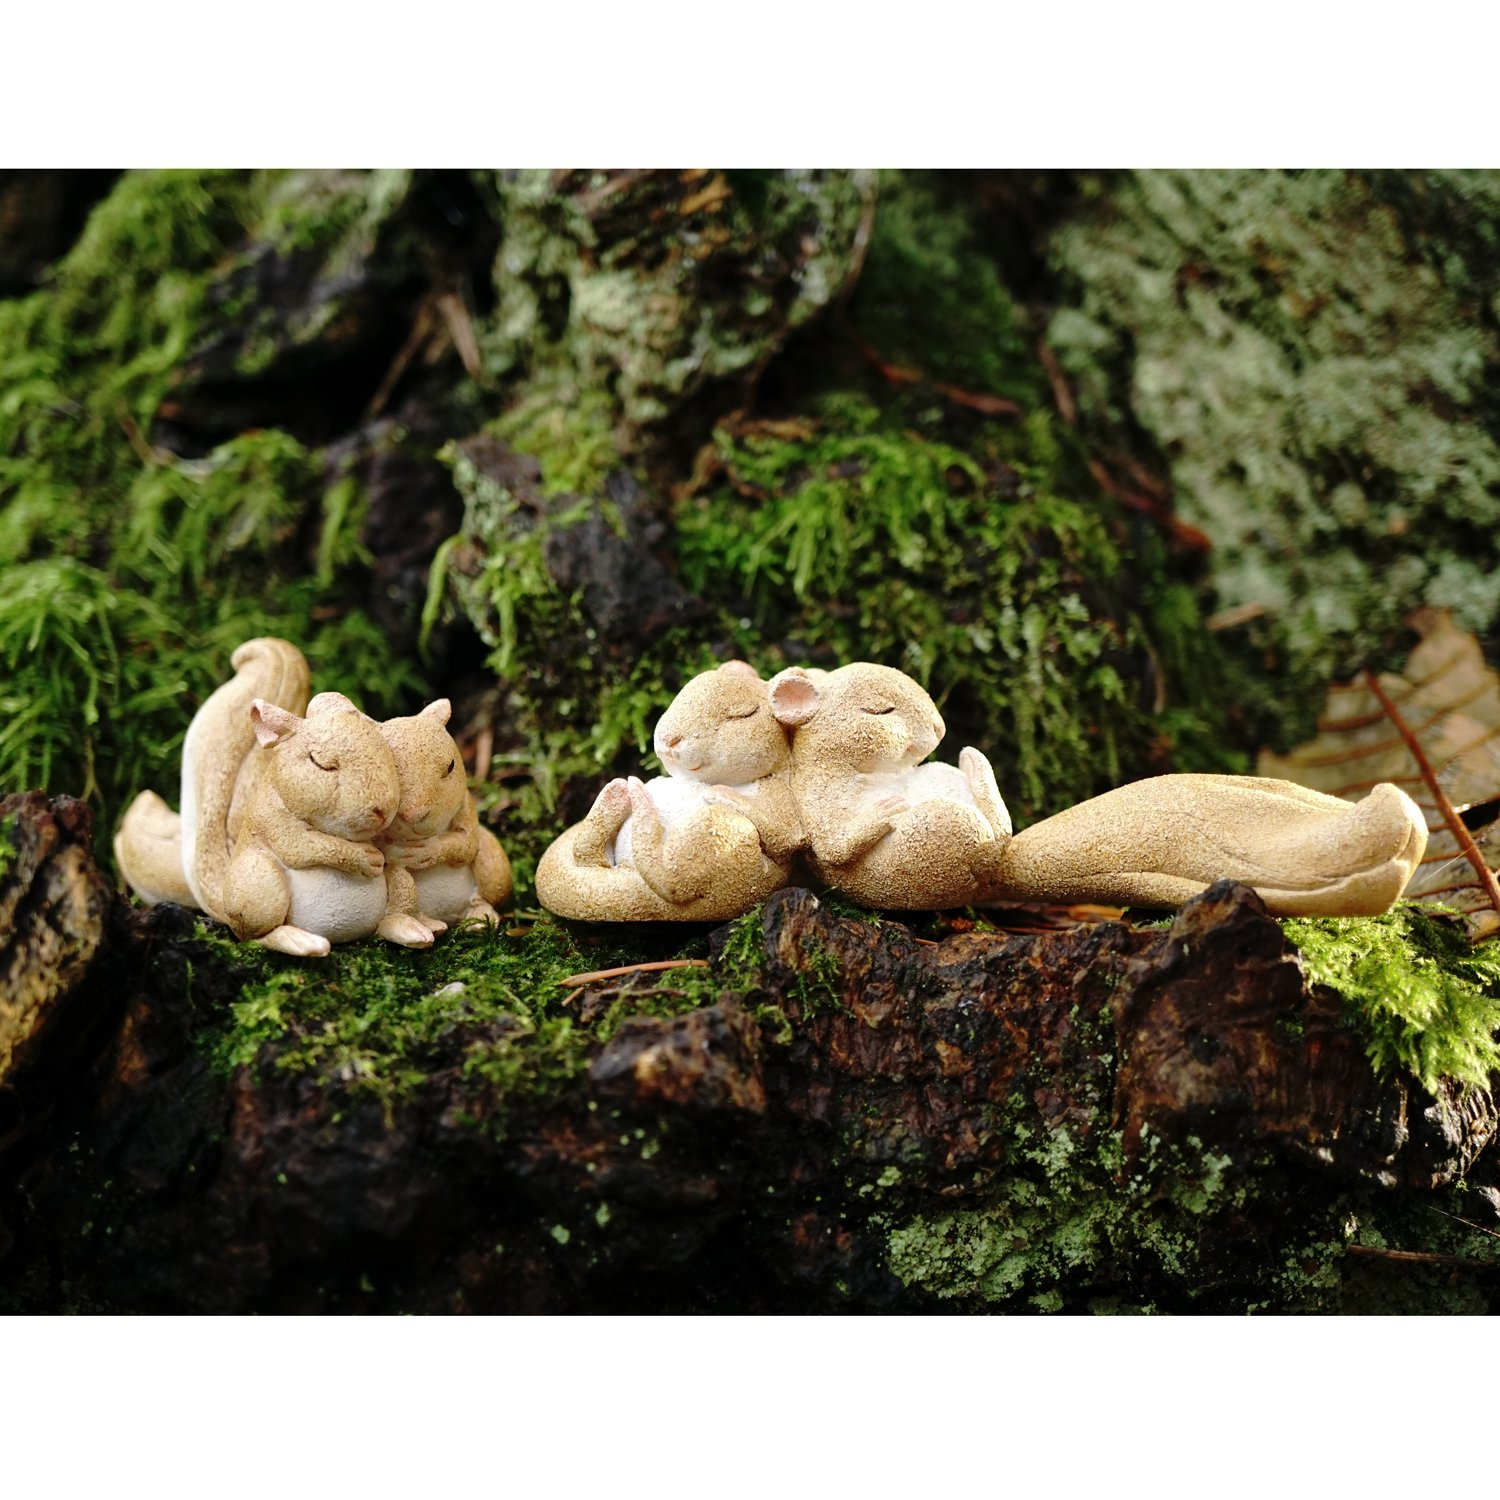 Top Collection Miniature Fairy Garden and Terrarium Statue, Sleeping Squirrels, 1.25-Inch by 4.25-Inch